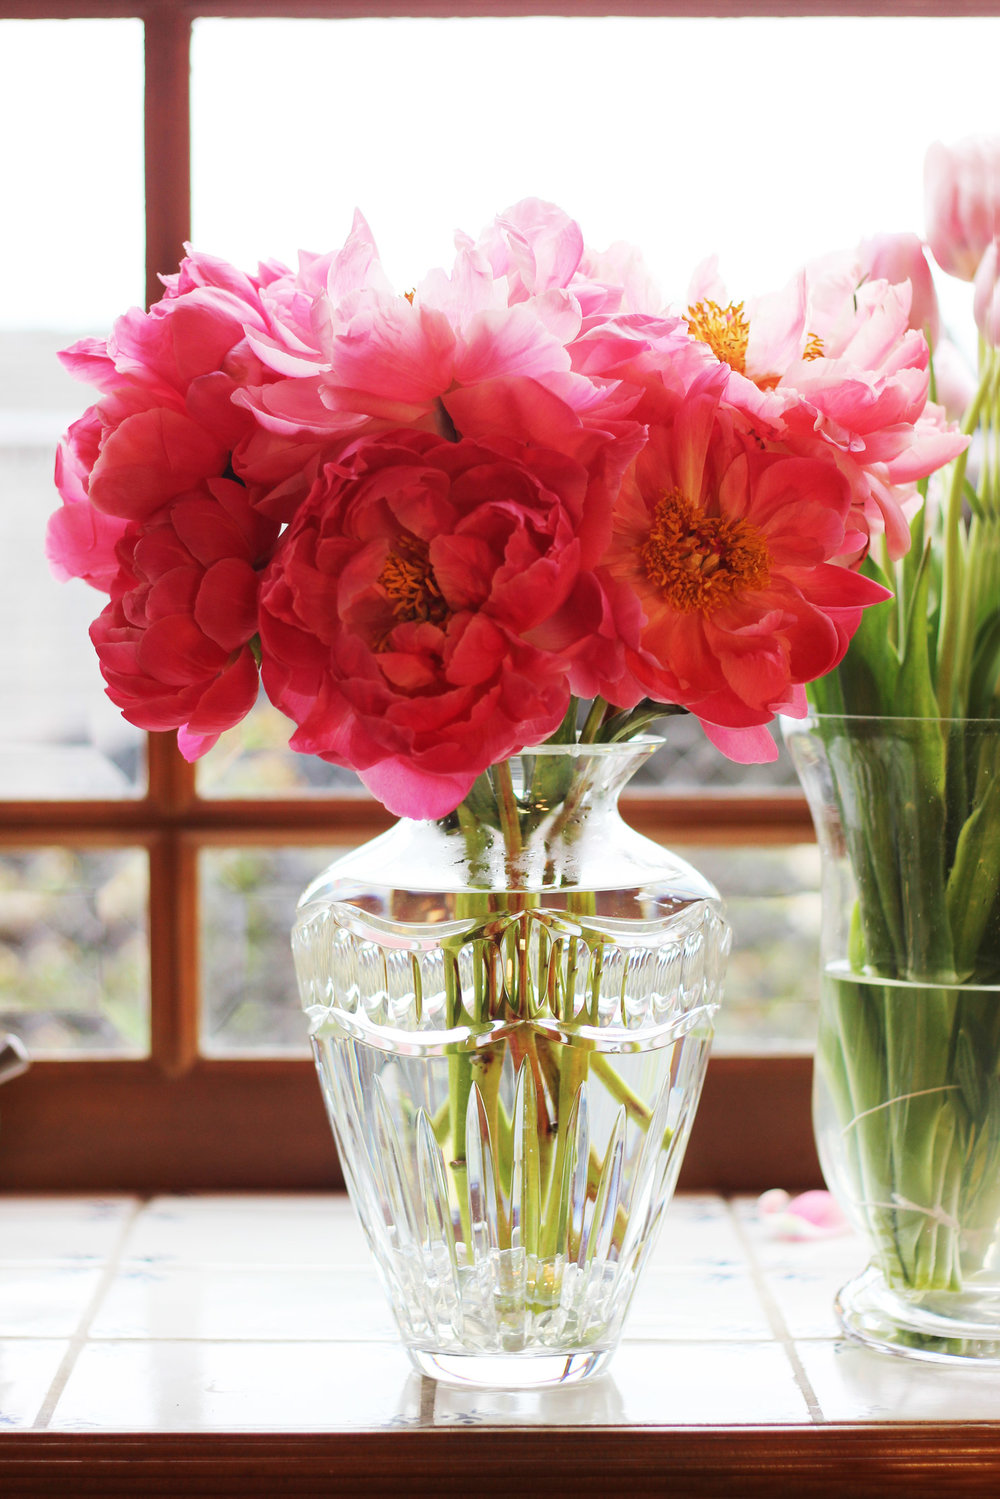 Put peonies on left and right of lower center peony.  (Cut them 13.5 inches) Repeat for back.